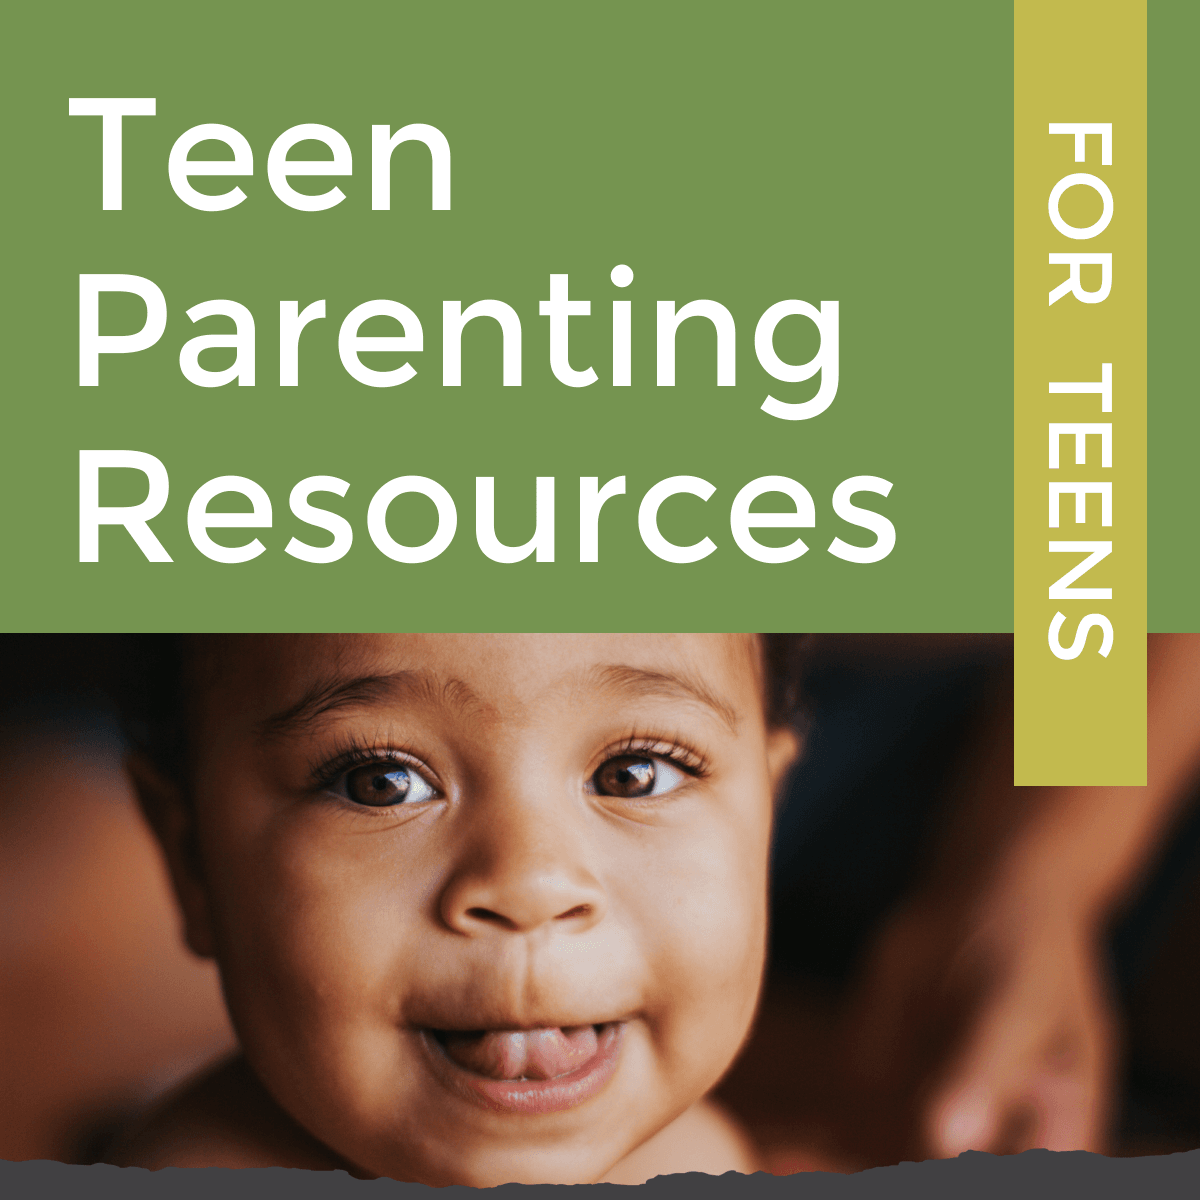 teen parenting resources for teens